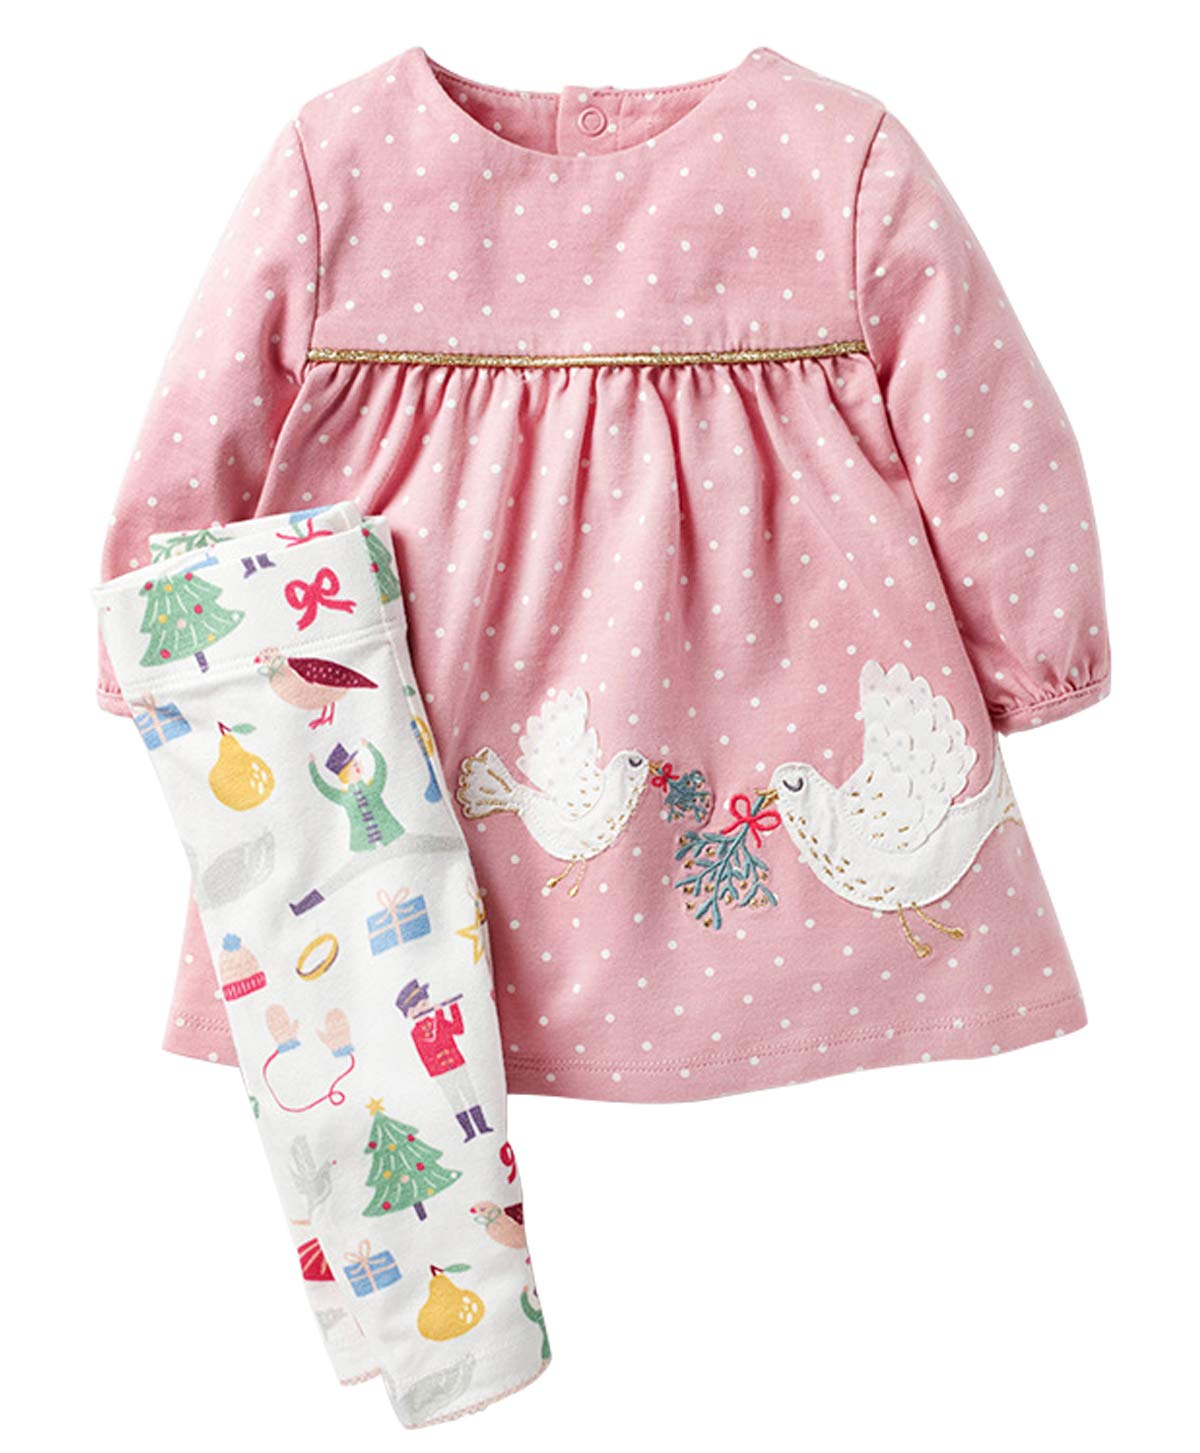 Fiream Longsleeve Casual clothing Sets Cotton Dress Sets 2 Piece For Girls(Z0004,2T/2-3YRS)